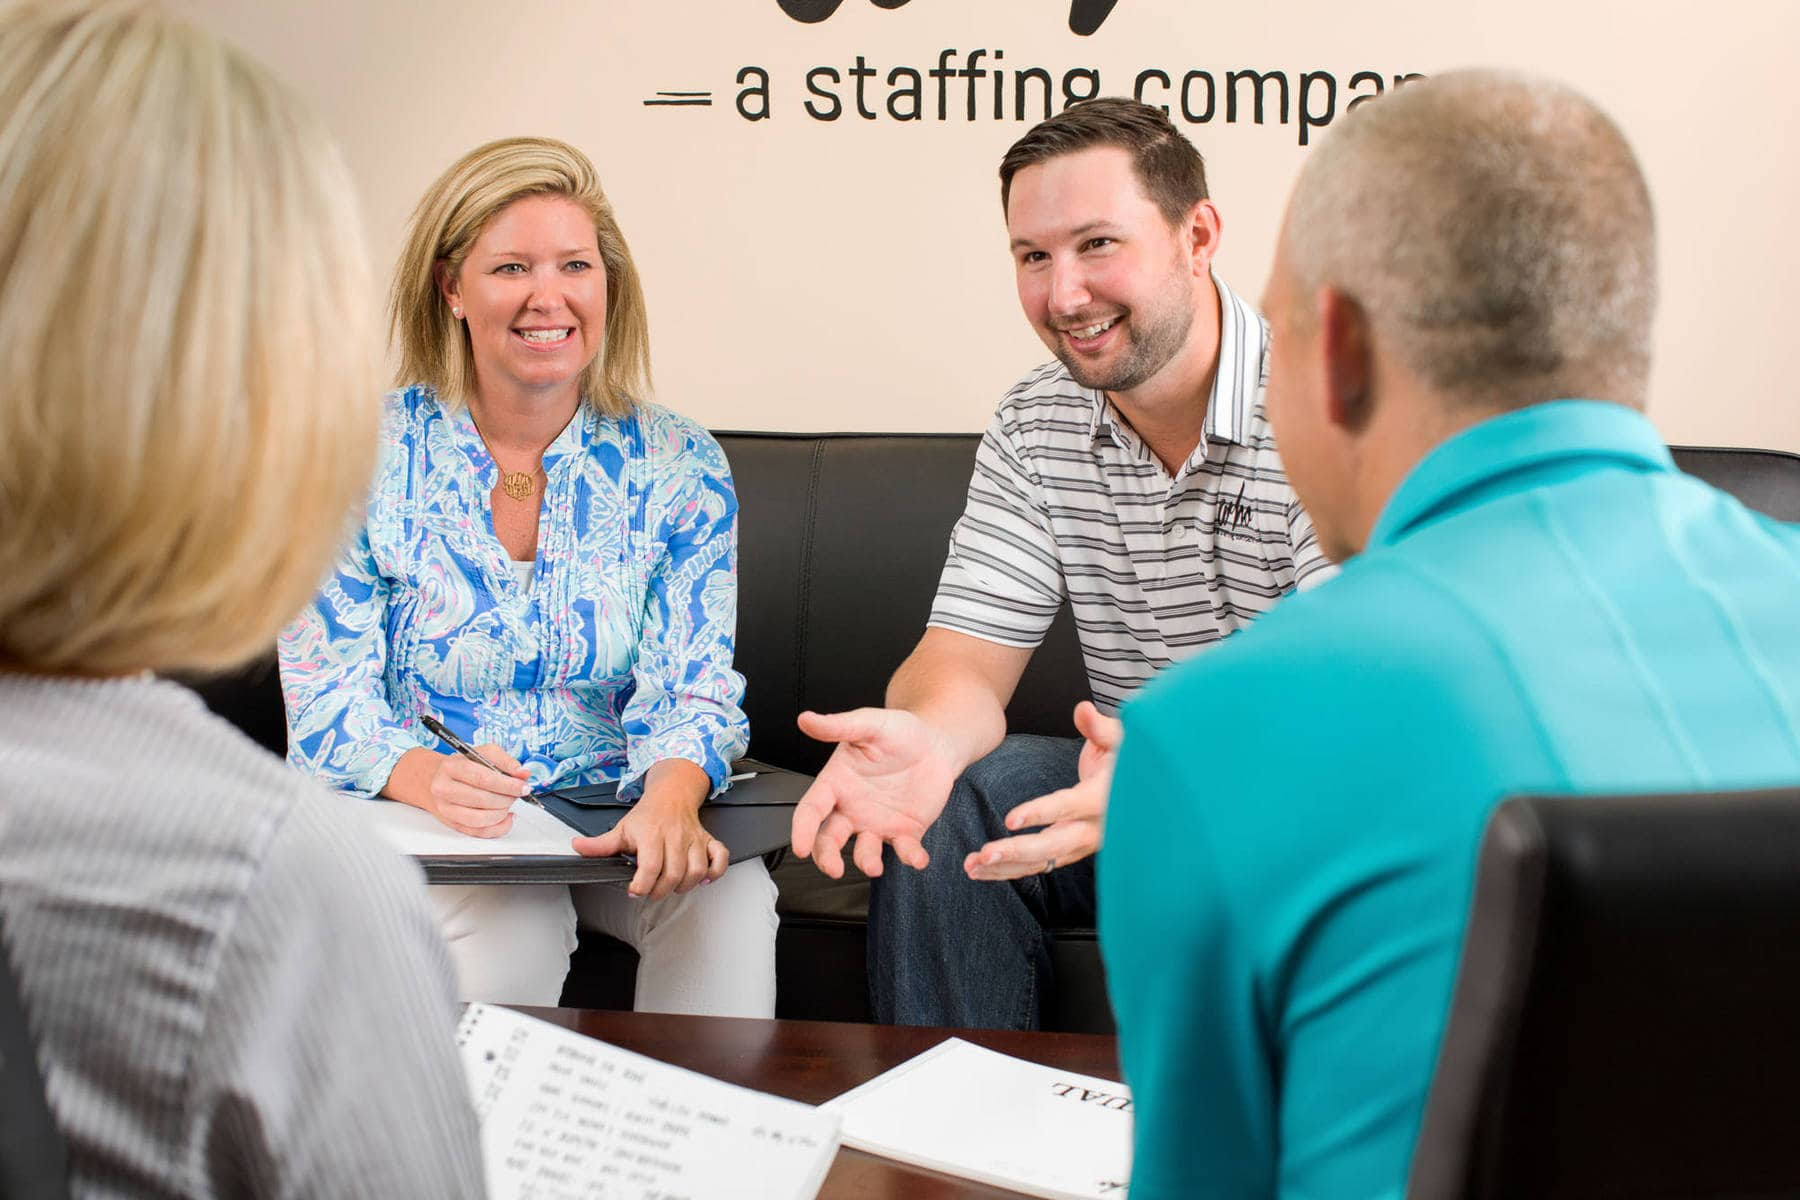 Who A Staffing Company Woodstock Maryland Marketing Personal Branding Photos Kelly Heck Photography